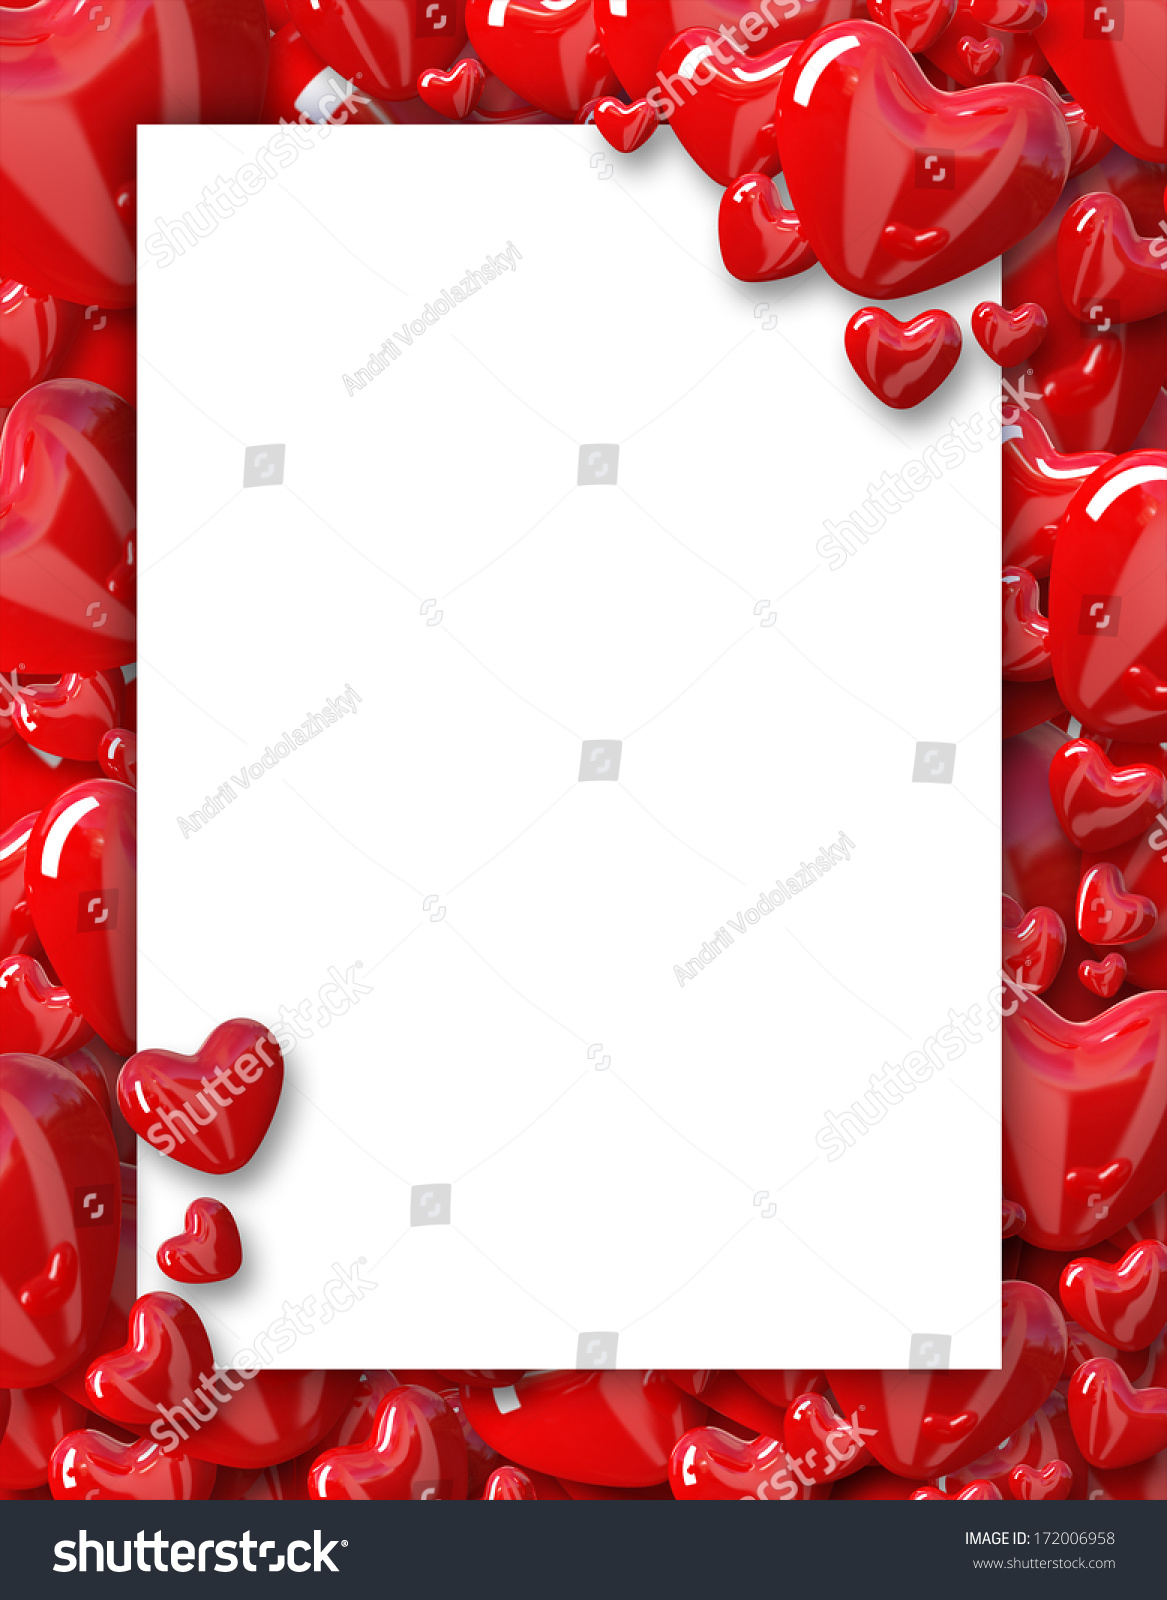 Valentines Day Background Frame Hearts Stock Illustration 172006958 ...